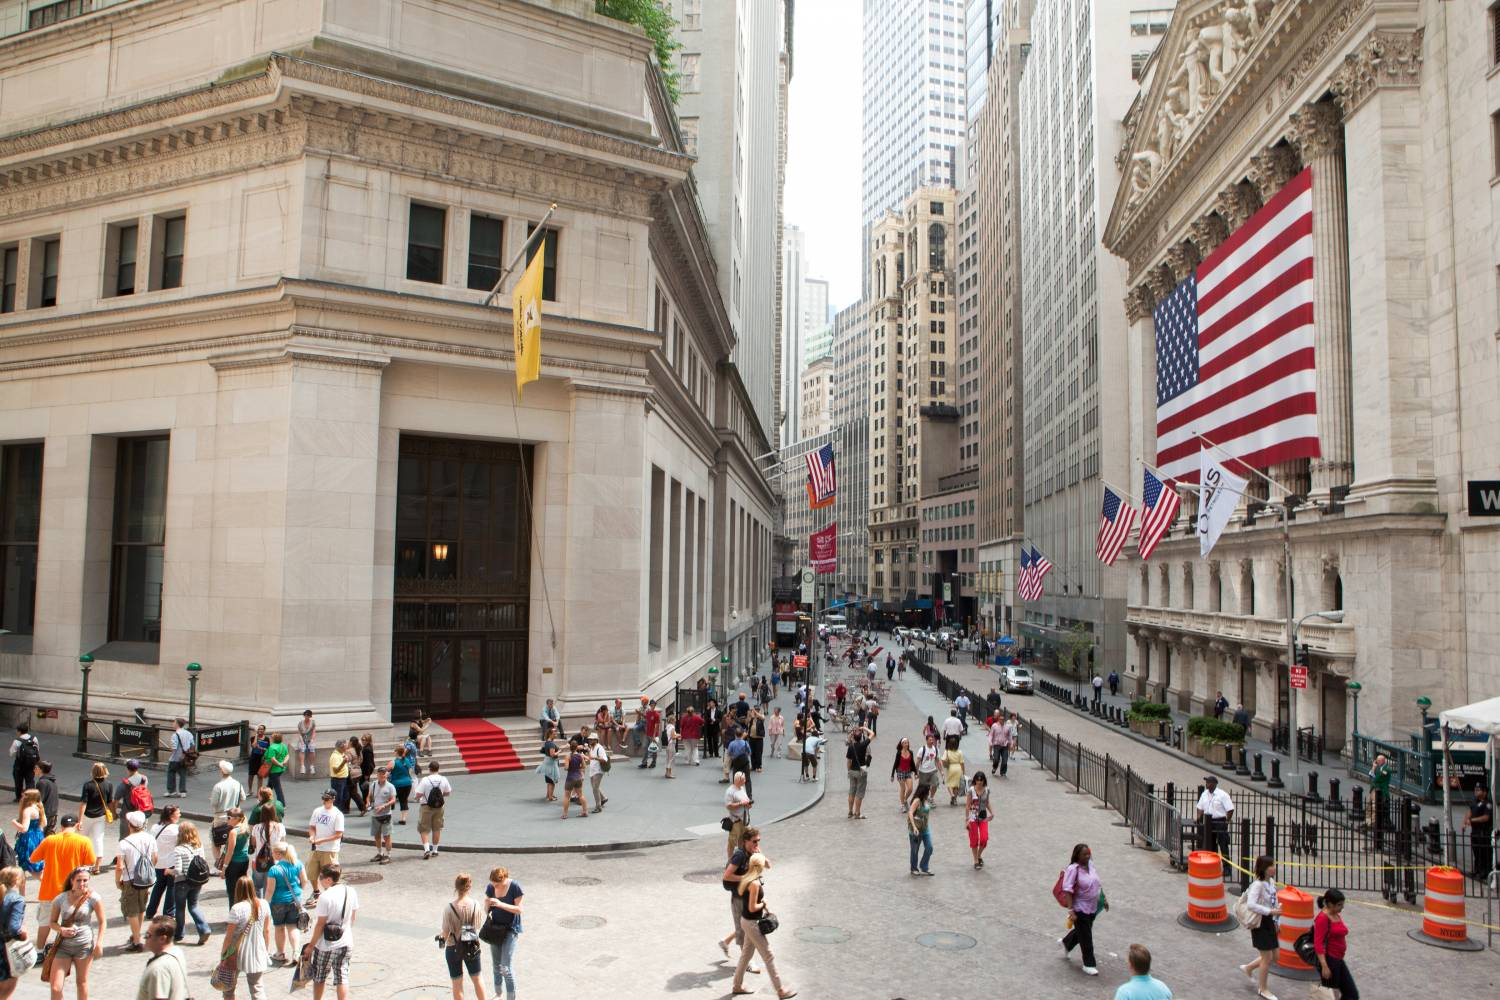 Street view of Wall Street photographed from above